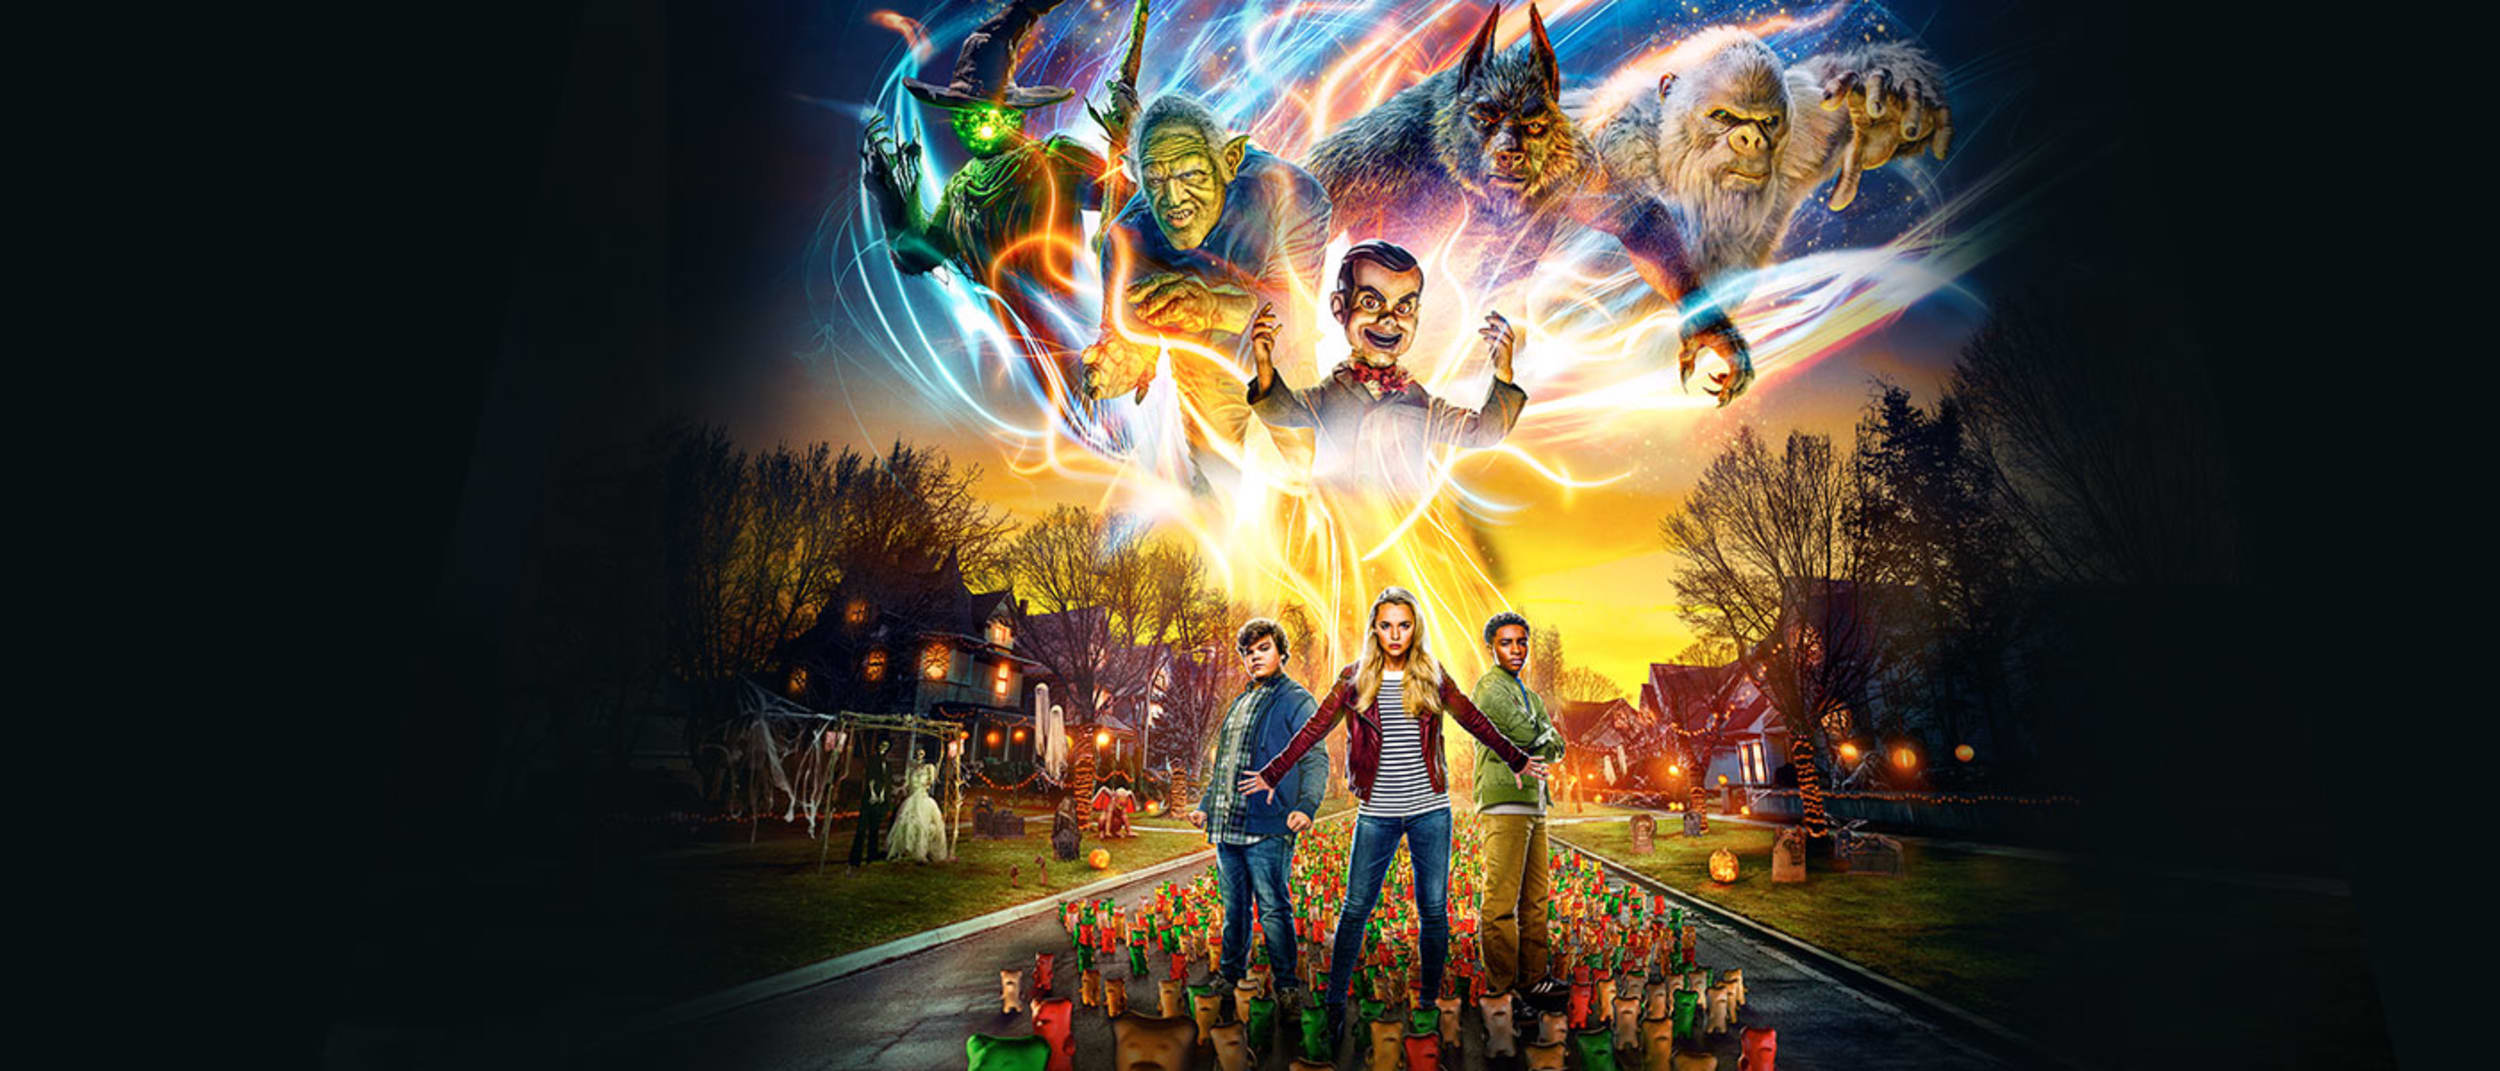 HOYTS: Advance Screenings - Goosebumps 2: Haunted Halloween